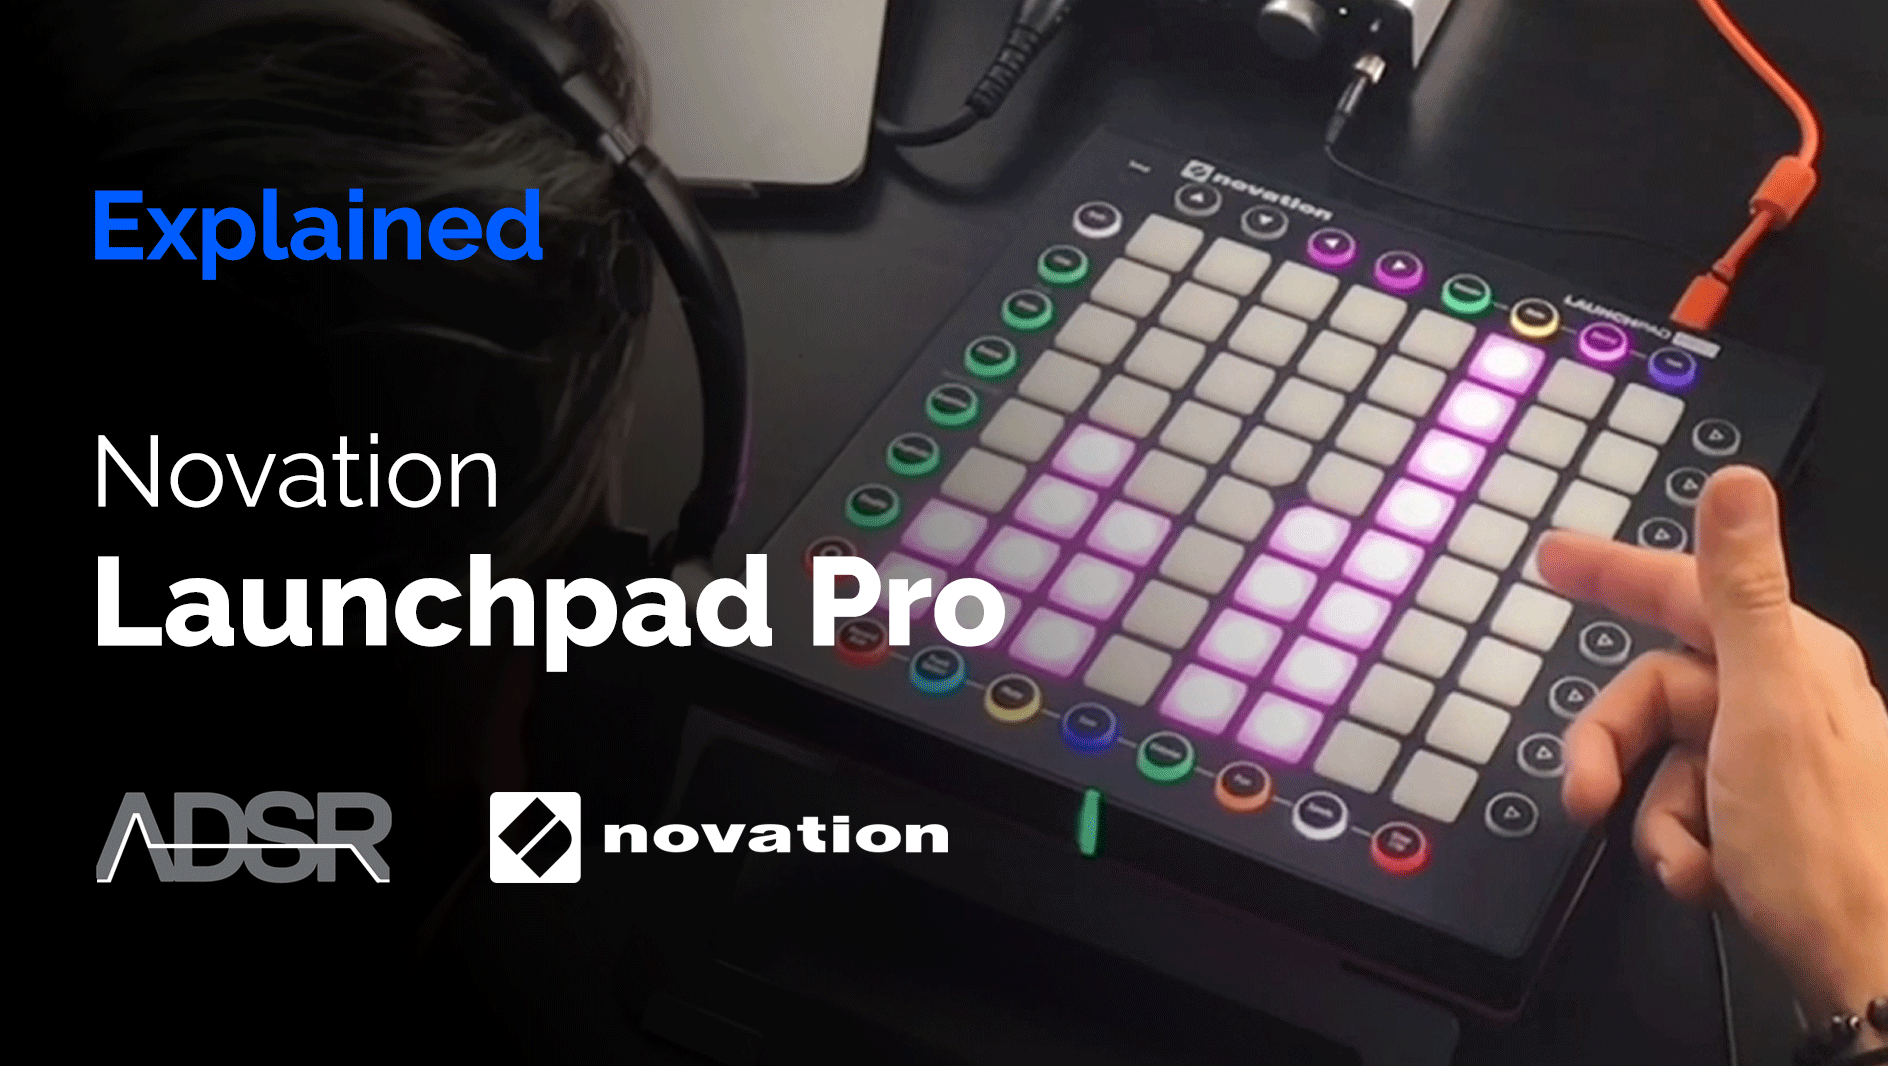 Novation Launchpad Pro Explained